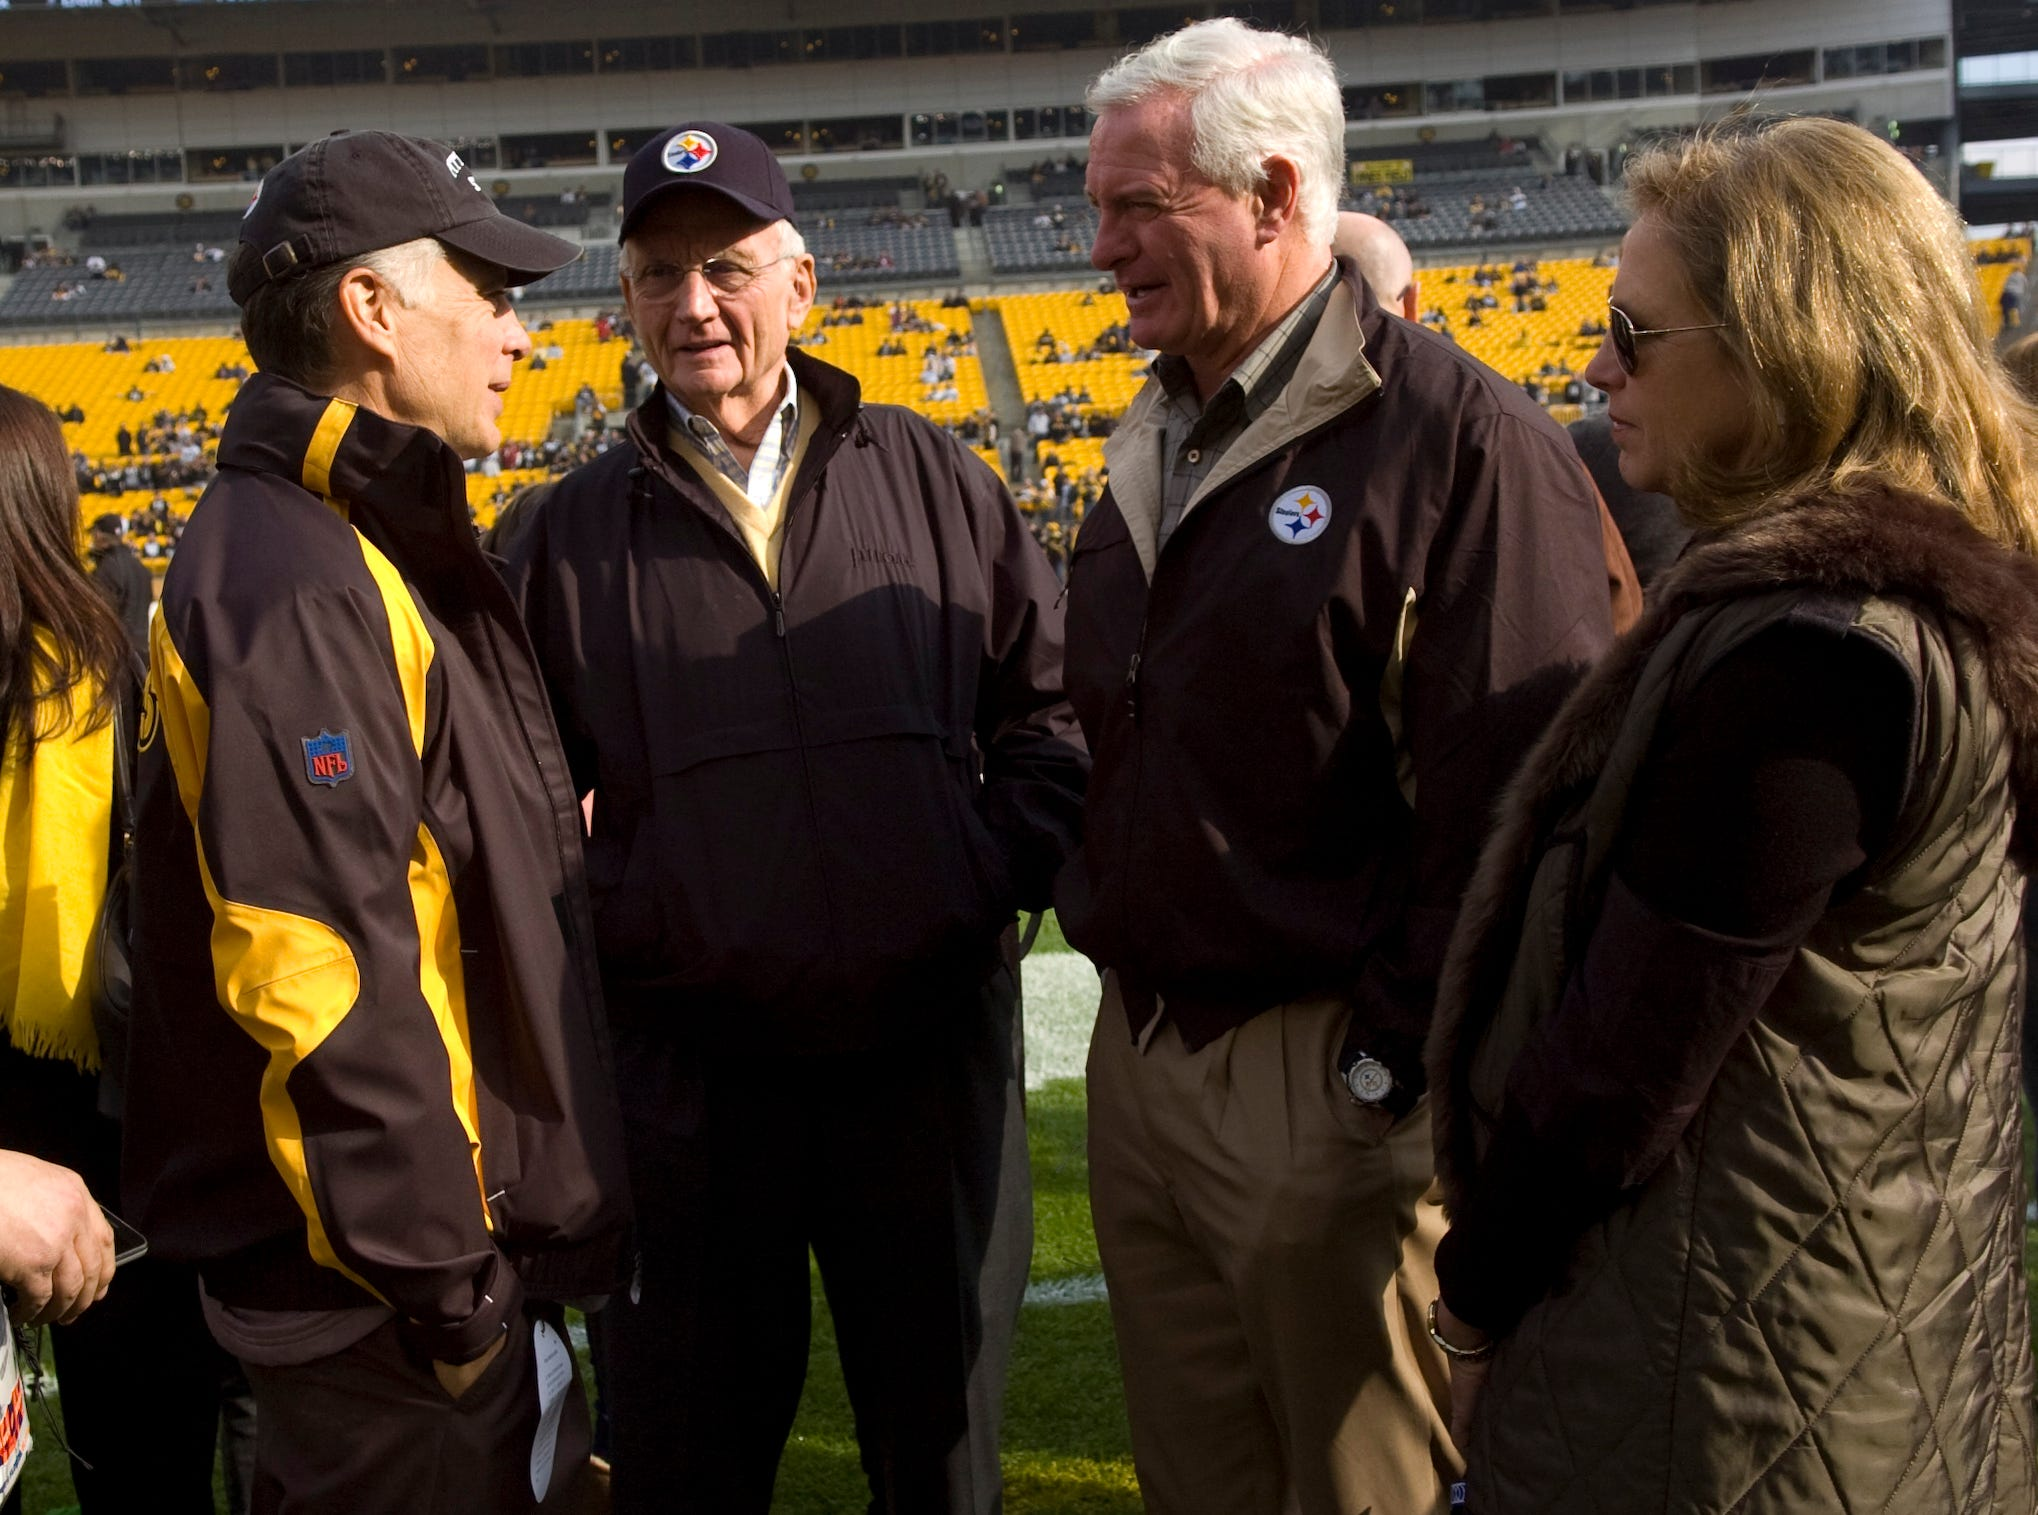 Pittsburgh Steelers President Art Rooney II (left) visits with Jim, Jimmy and Dee Haslam before a game between the Pittsburgh Steelers and the Oakland Raiders in Pittsburgh on Nov. 21, 2010. Jimmy Haslam became a partner in the Pittsburgh Steelers in 2008.